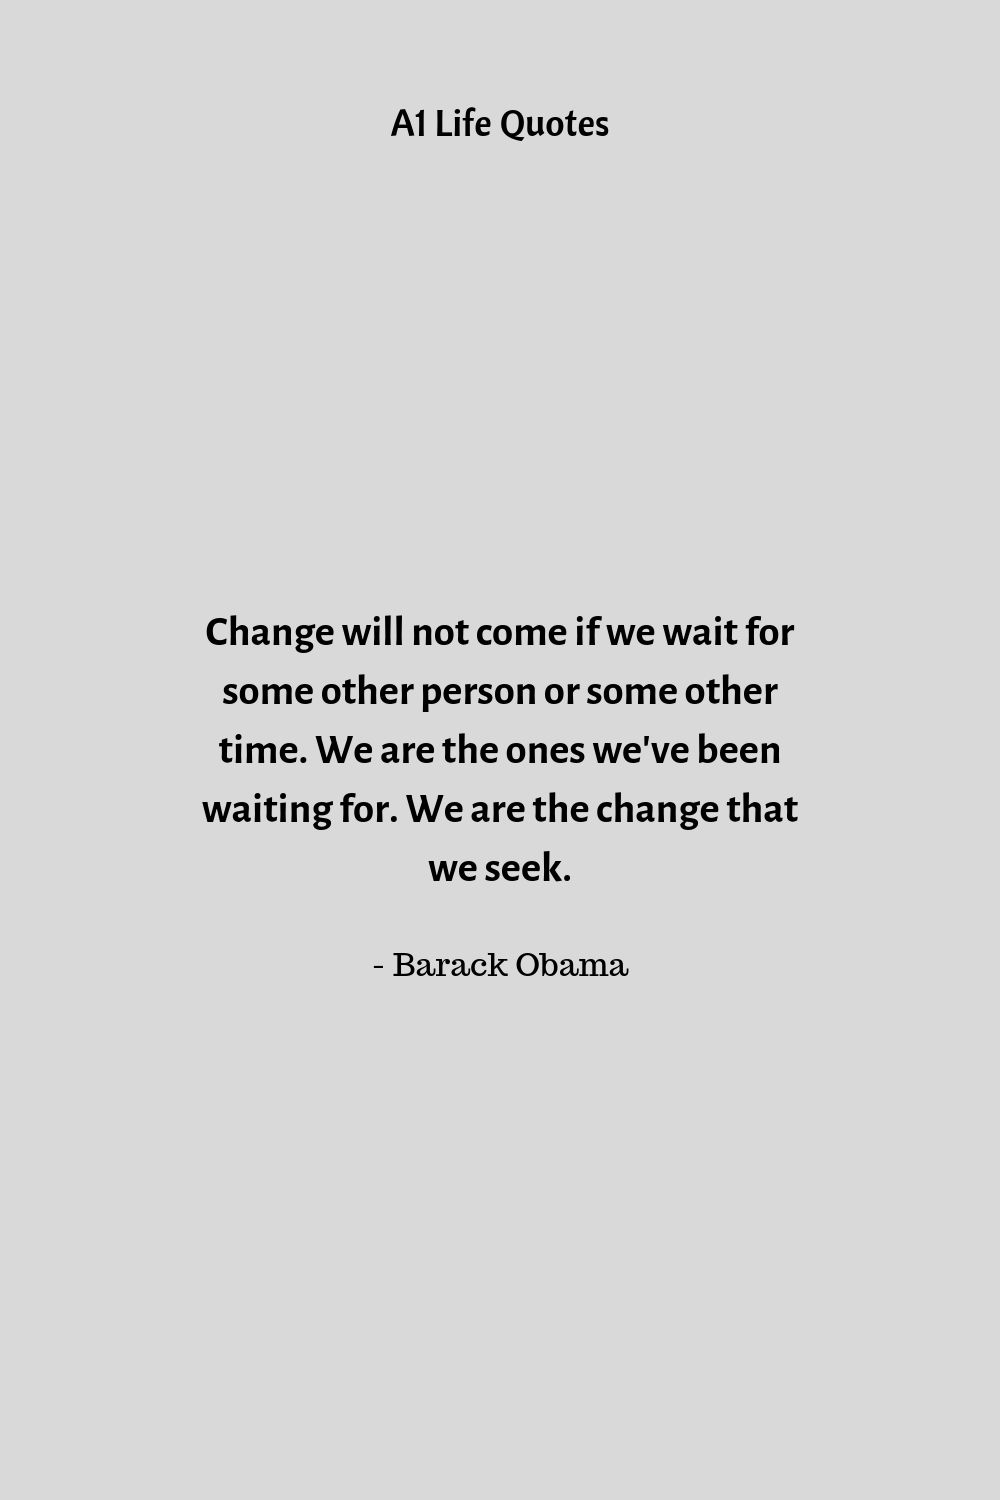 barack obama quote change will not come